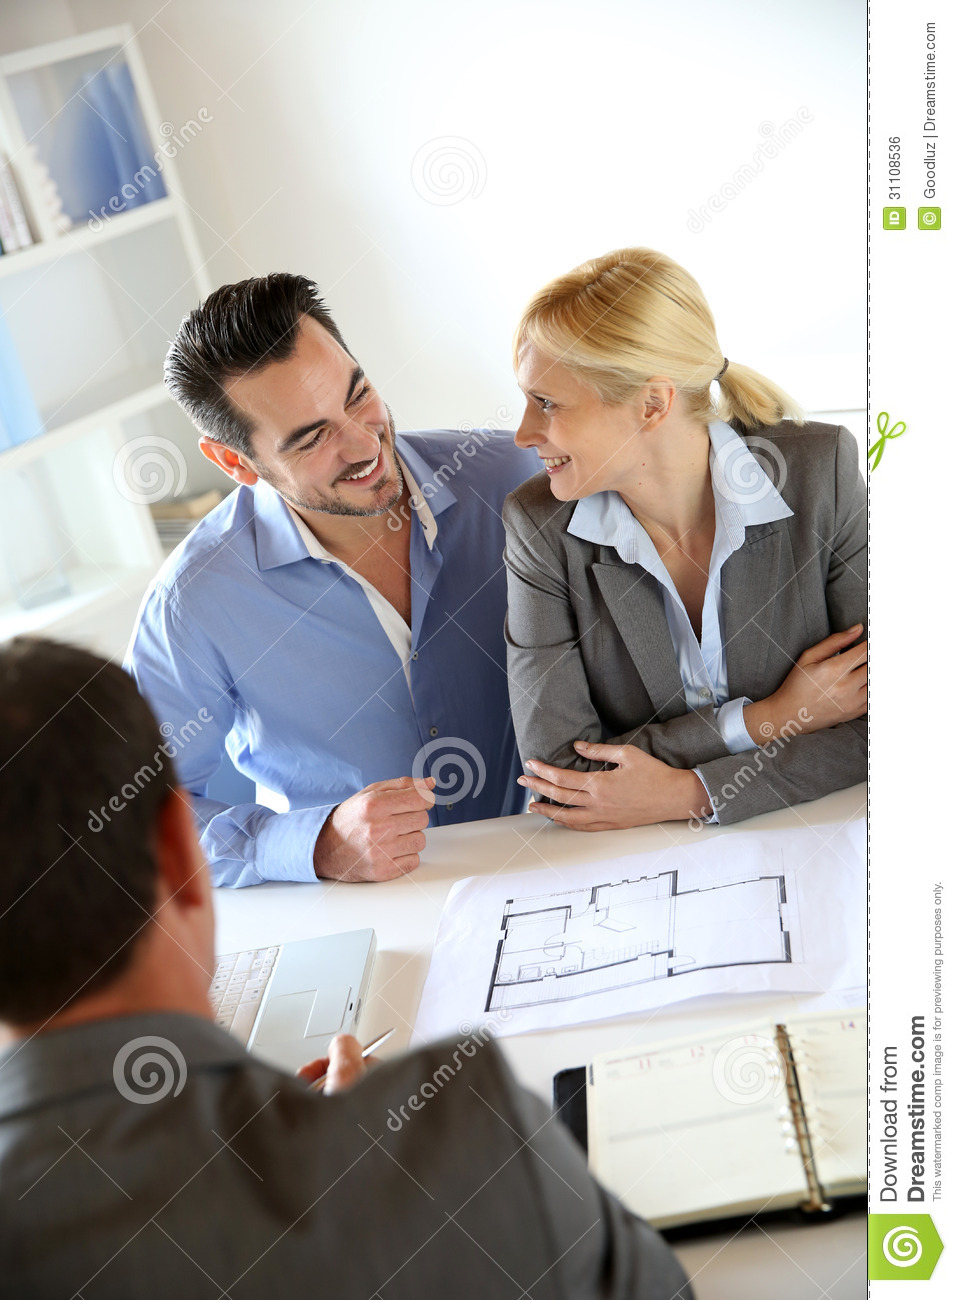 Couple Looking At Future House Plans Royalty Free Stock -1711